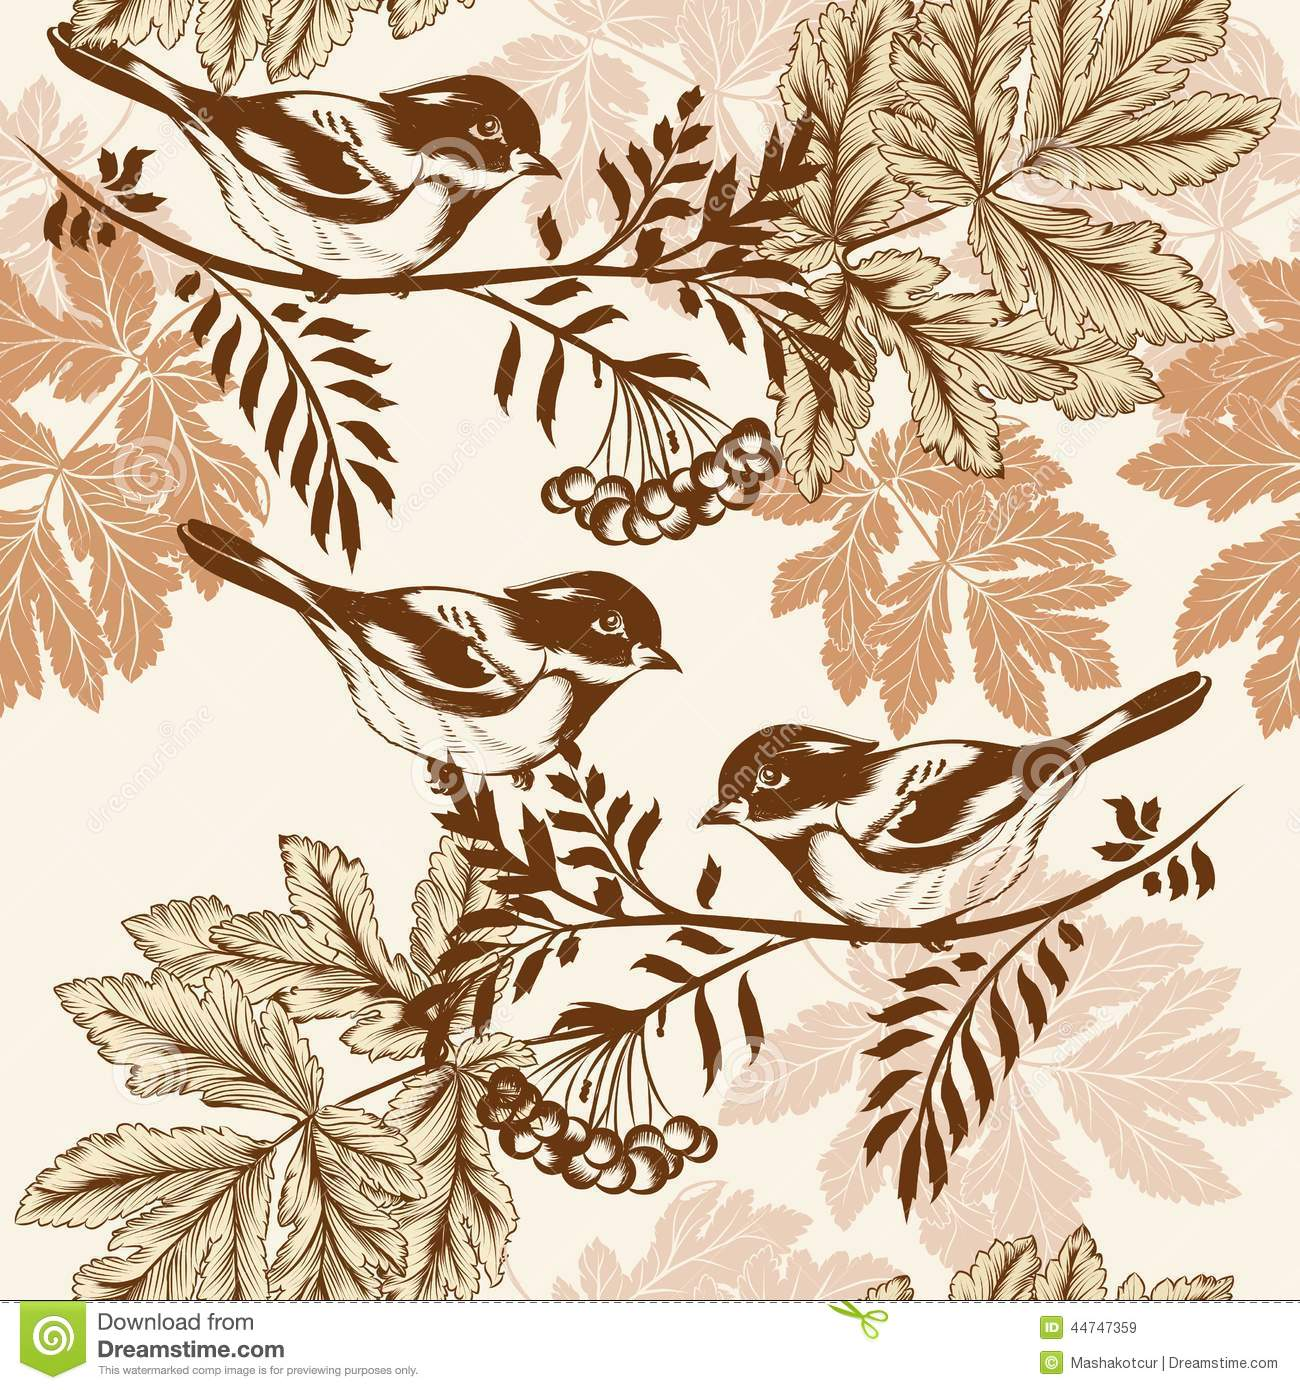 Wallpaper With Birds seamless wallpaper with birds stock photography - image: 10197812